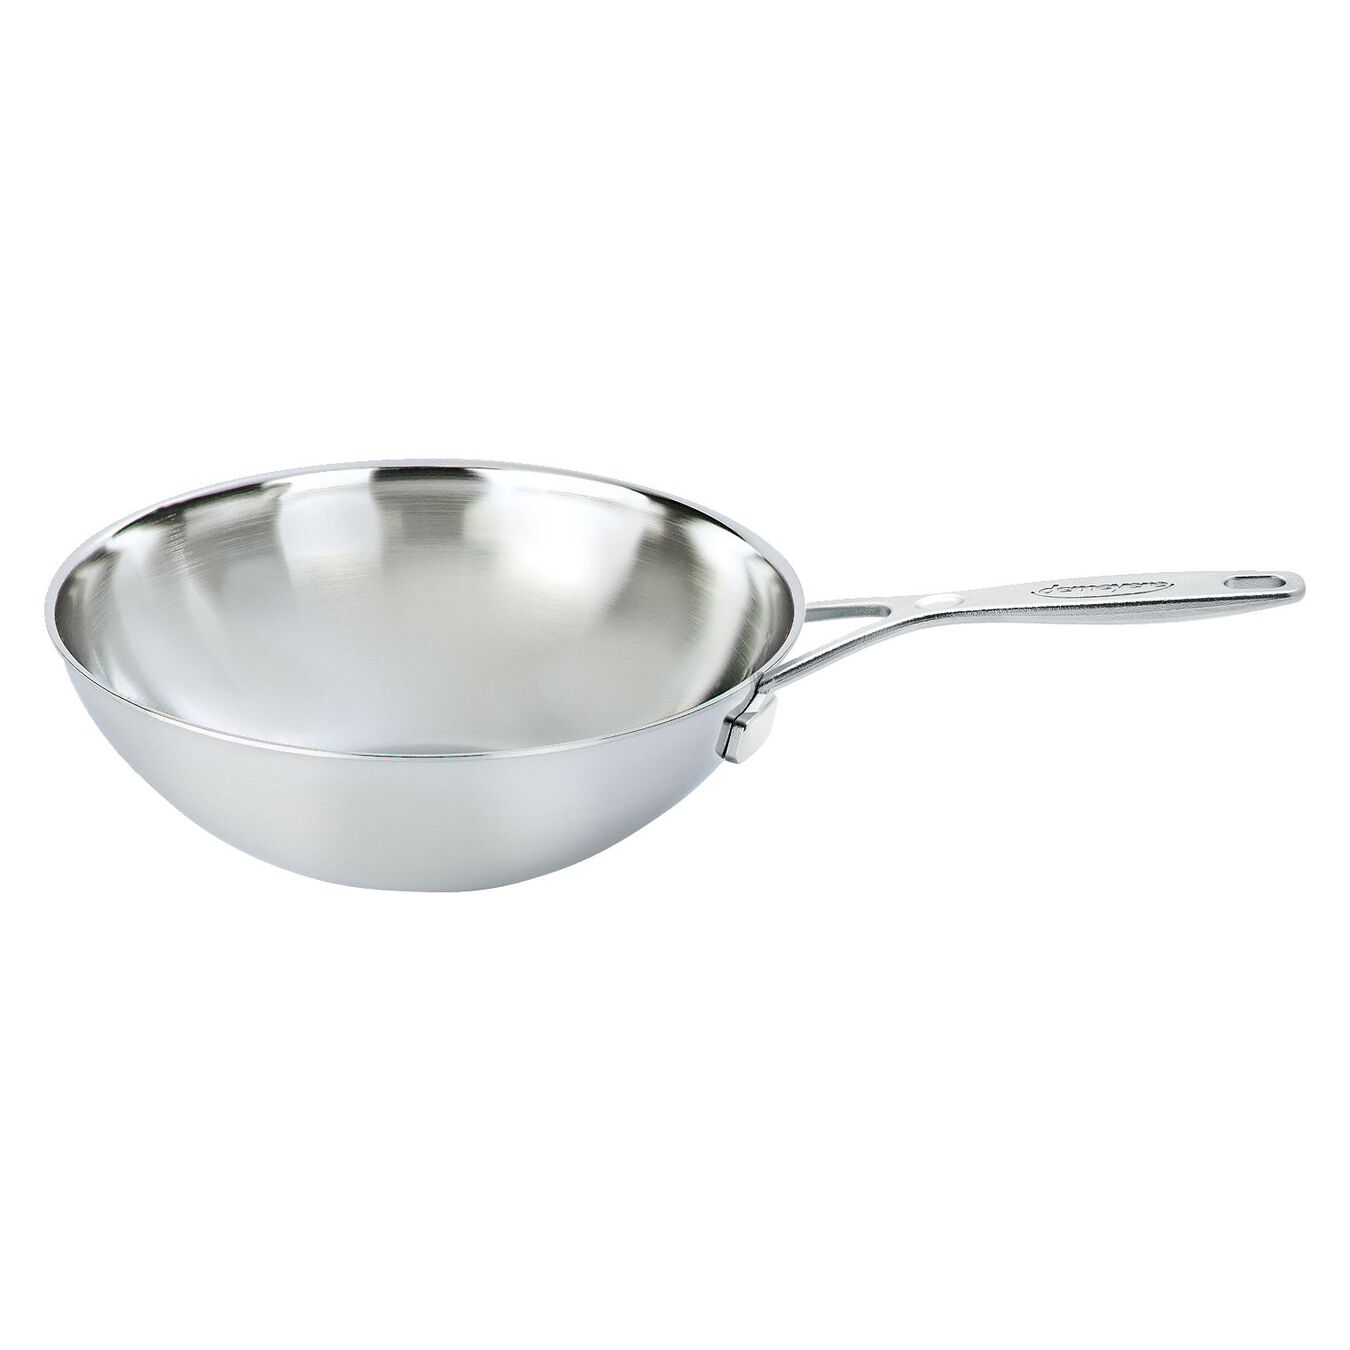 30 cm / 12 inch 18/10 Stainless Steel Wok without lid,,large 1